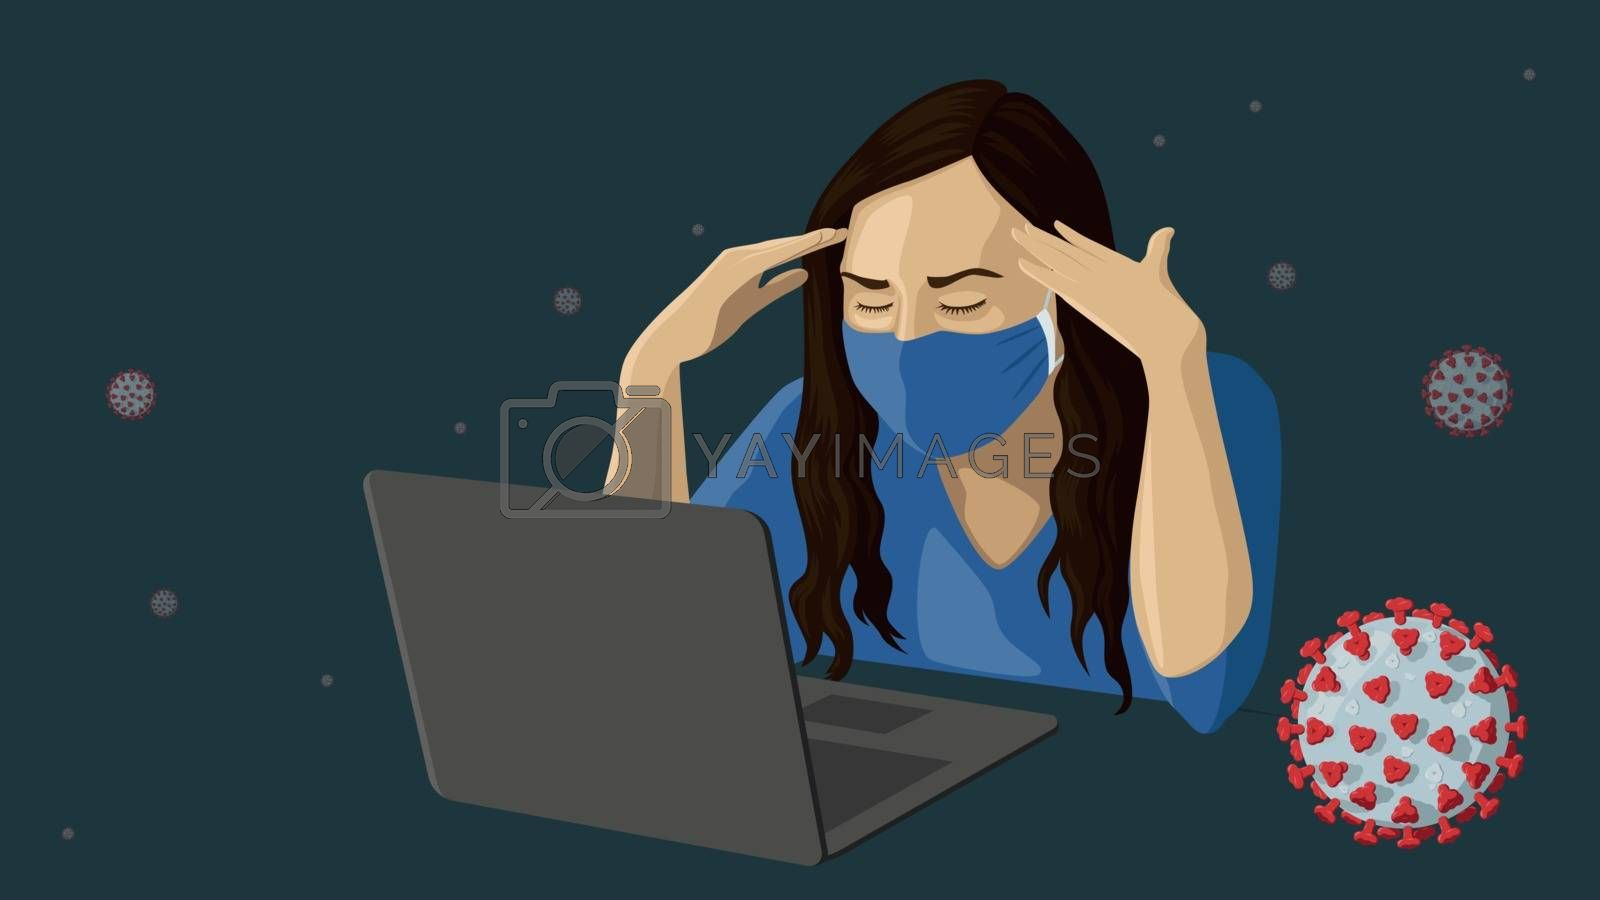 Detailed flat vector illustration of a woman with a face mask working in front of a laptop amidst the COVID-19 outbreak.